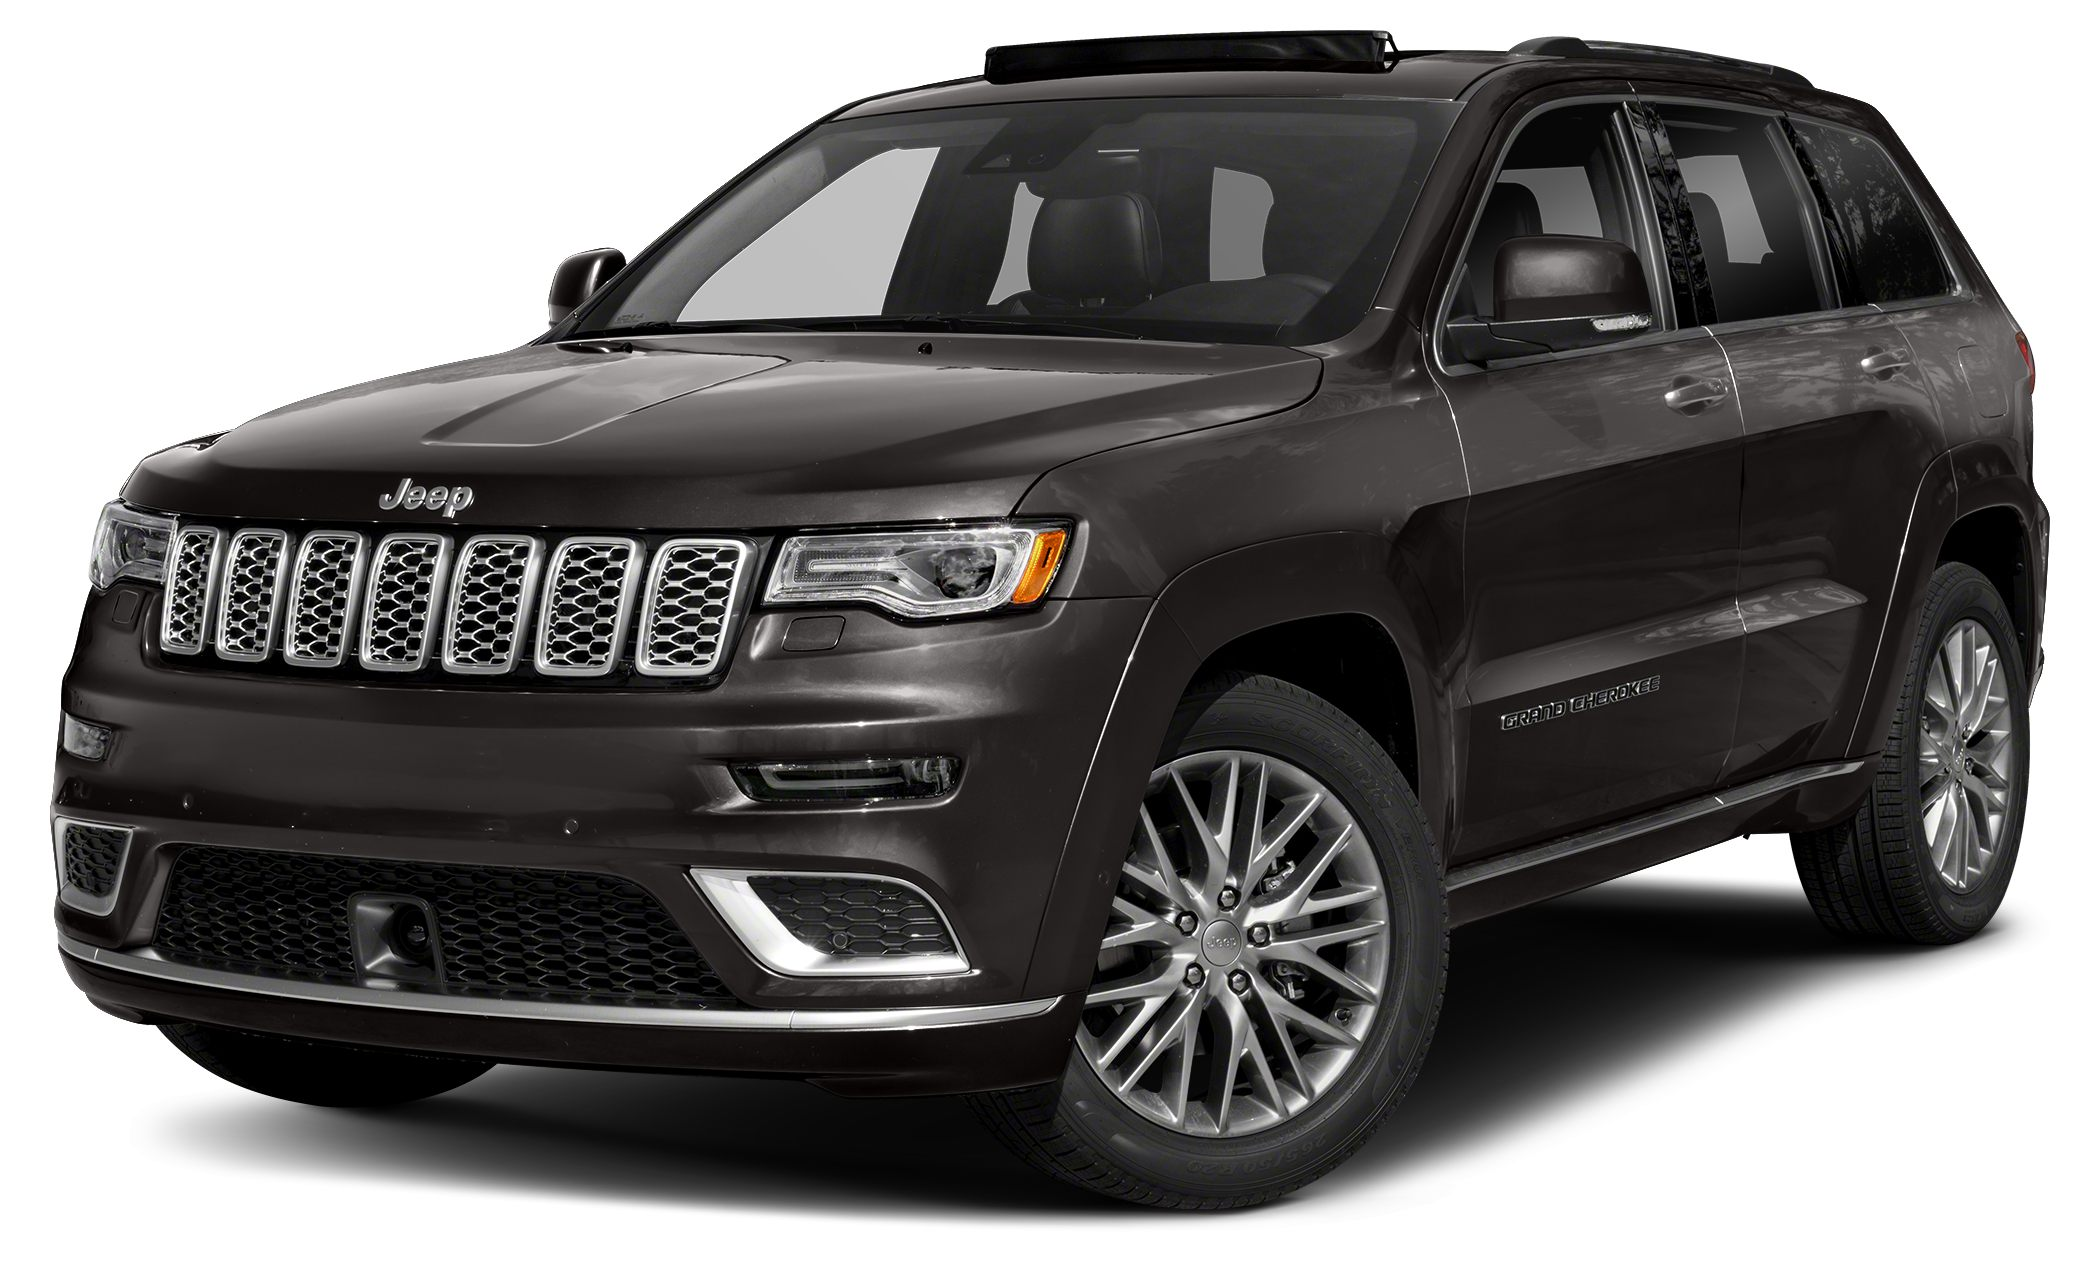 2018 Jeep Grand Cherokee Summit This awesome 2018 Jeep Grand Cherokee Summit is just waiting to br